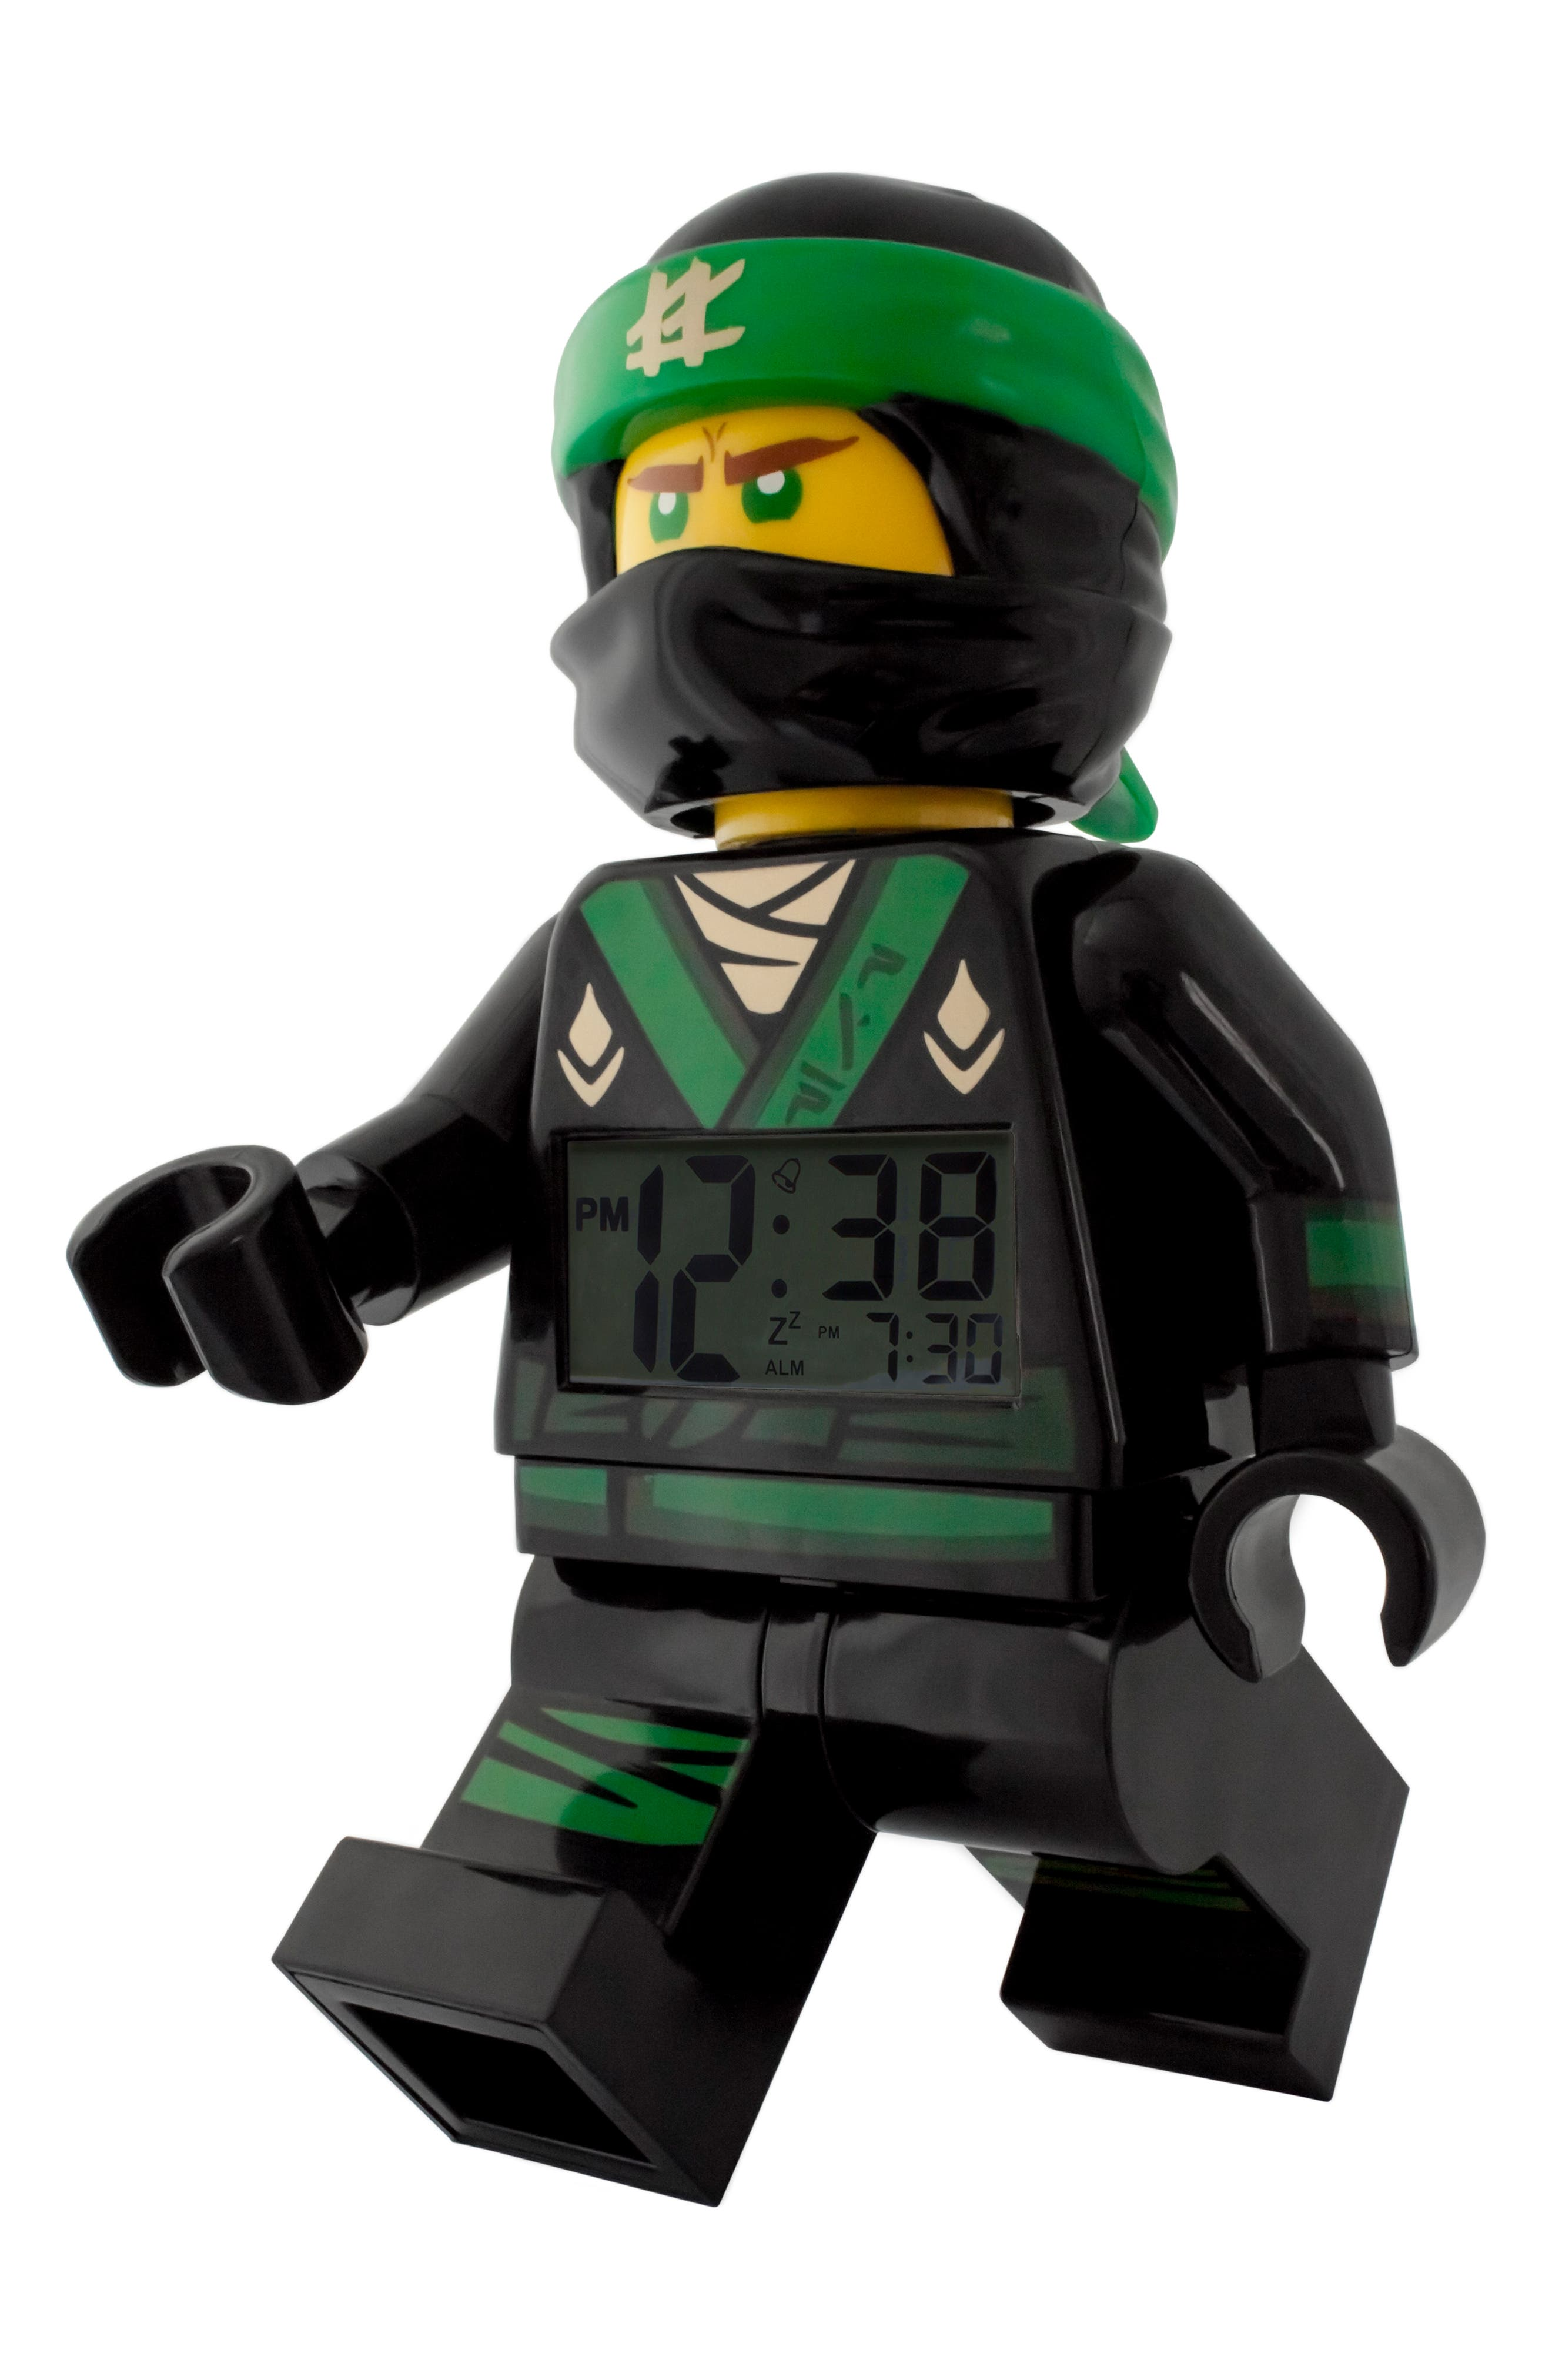 Ninjago Lloyd Digital Alarm Clock Minifigure,                             Alternate thumbnail 2, color,